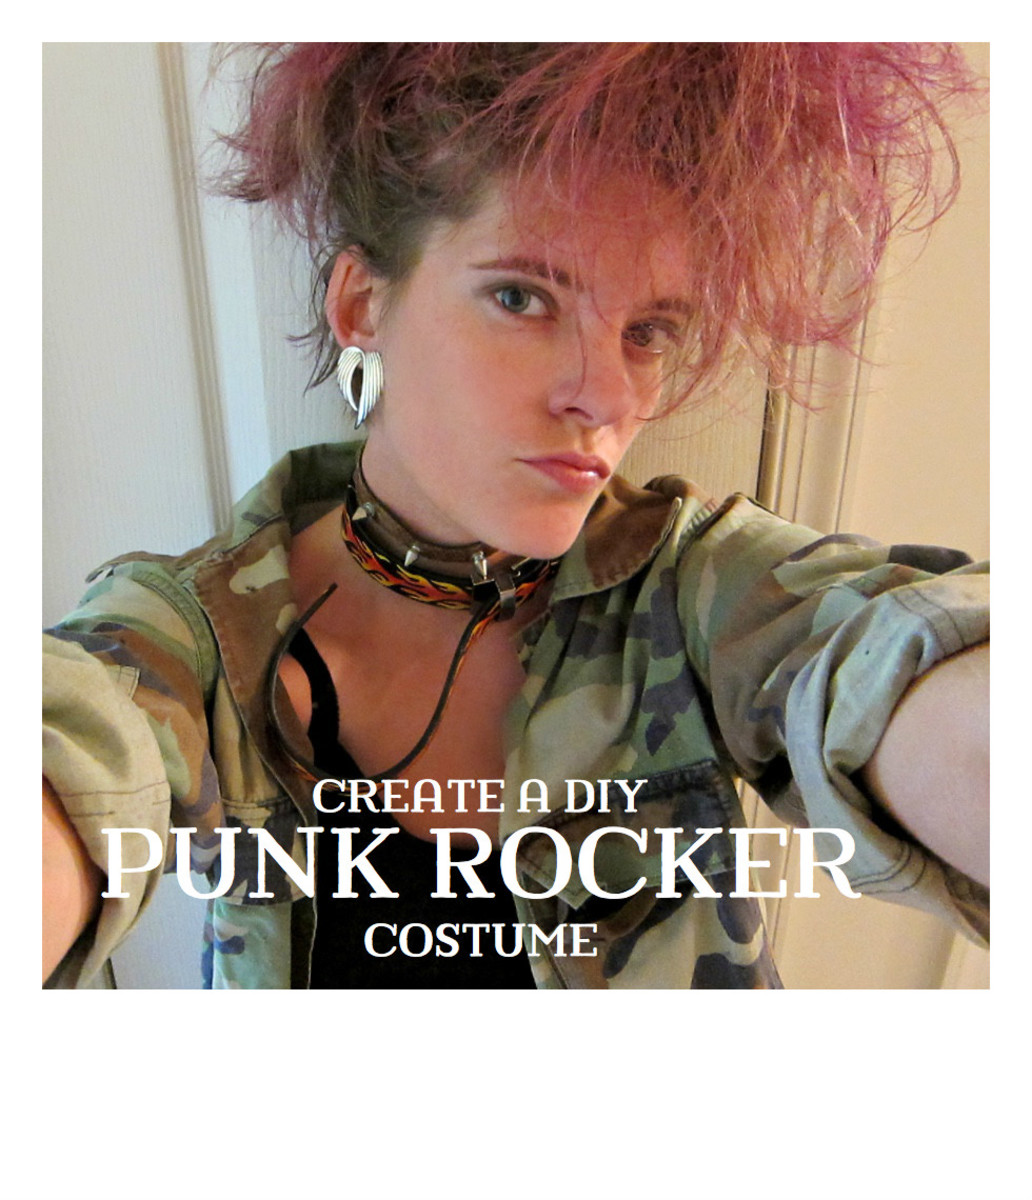 making a homemade punk costume ideas and instructions holidappy - Halloween Punk Costume